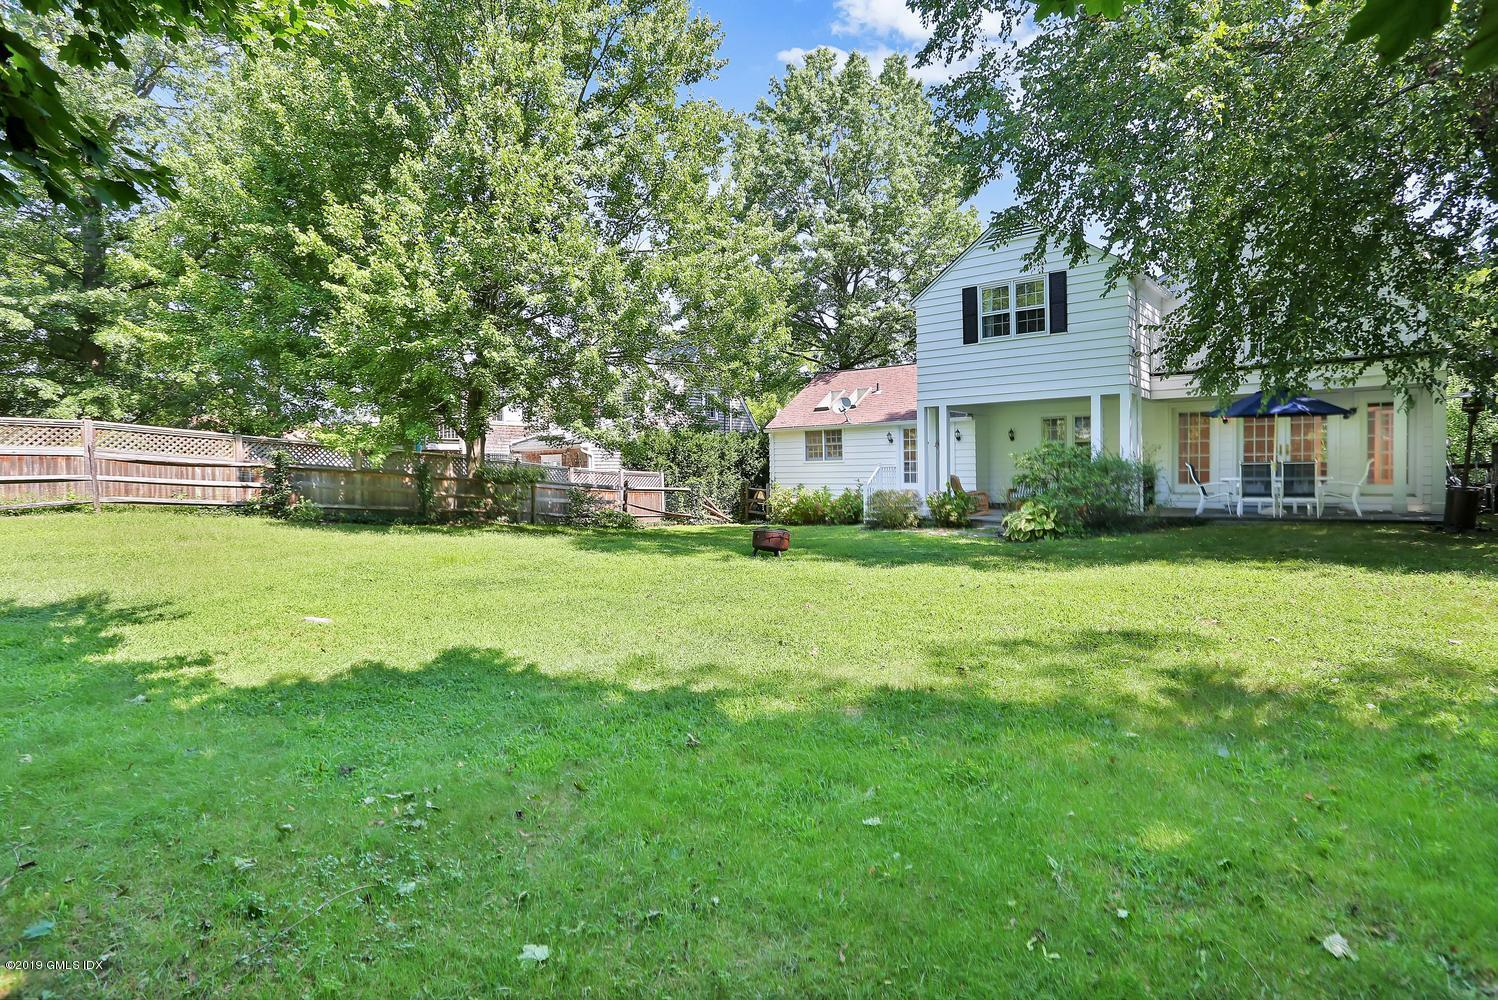 22 Linwood Avenue, Riverside, CT 06878